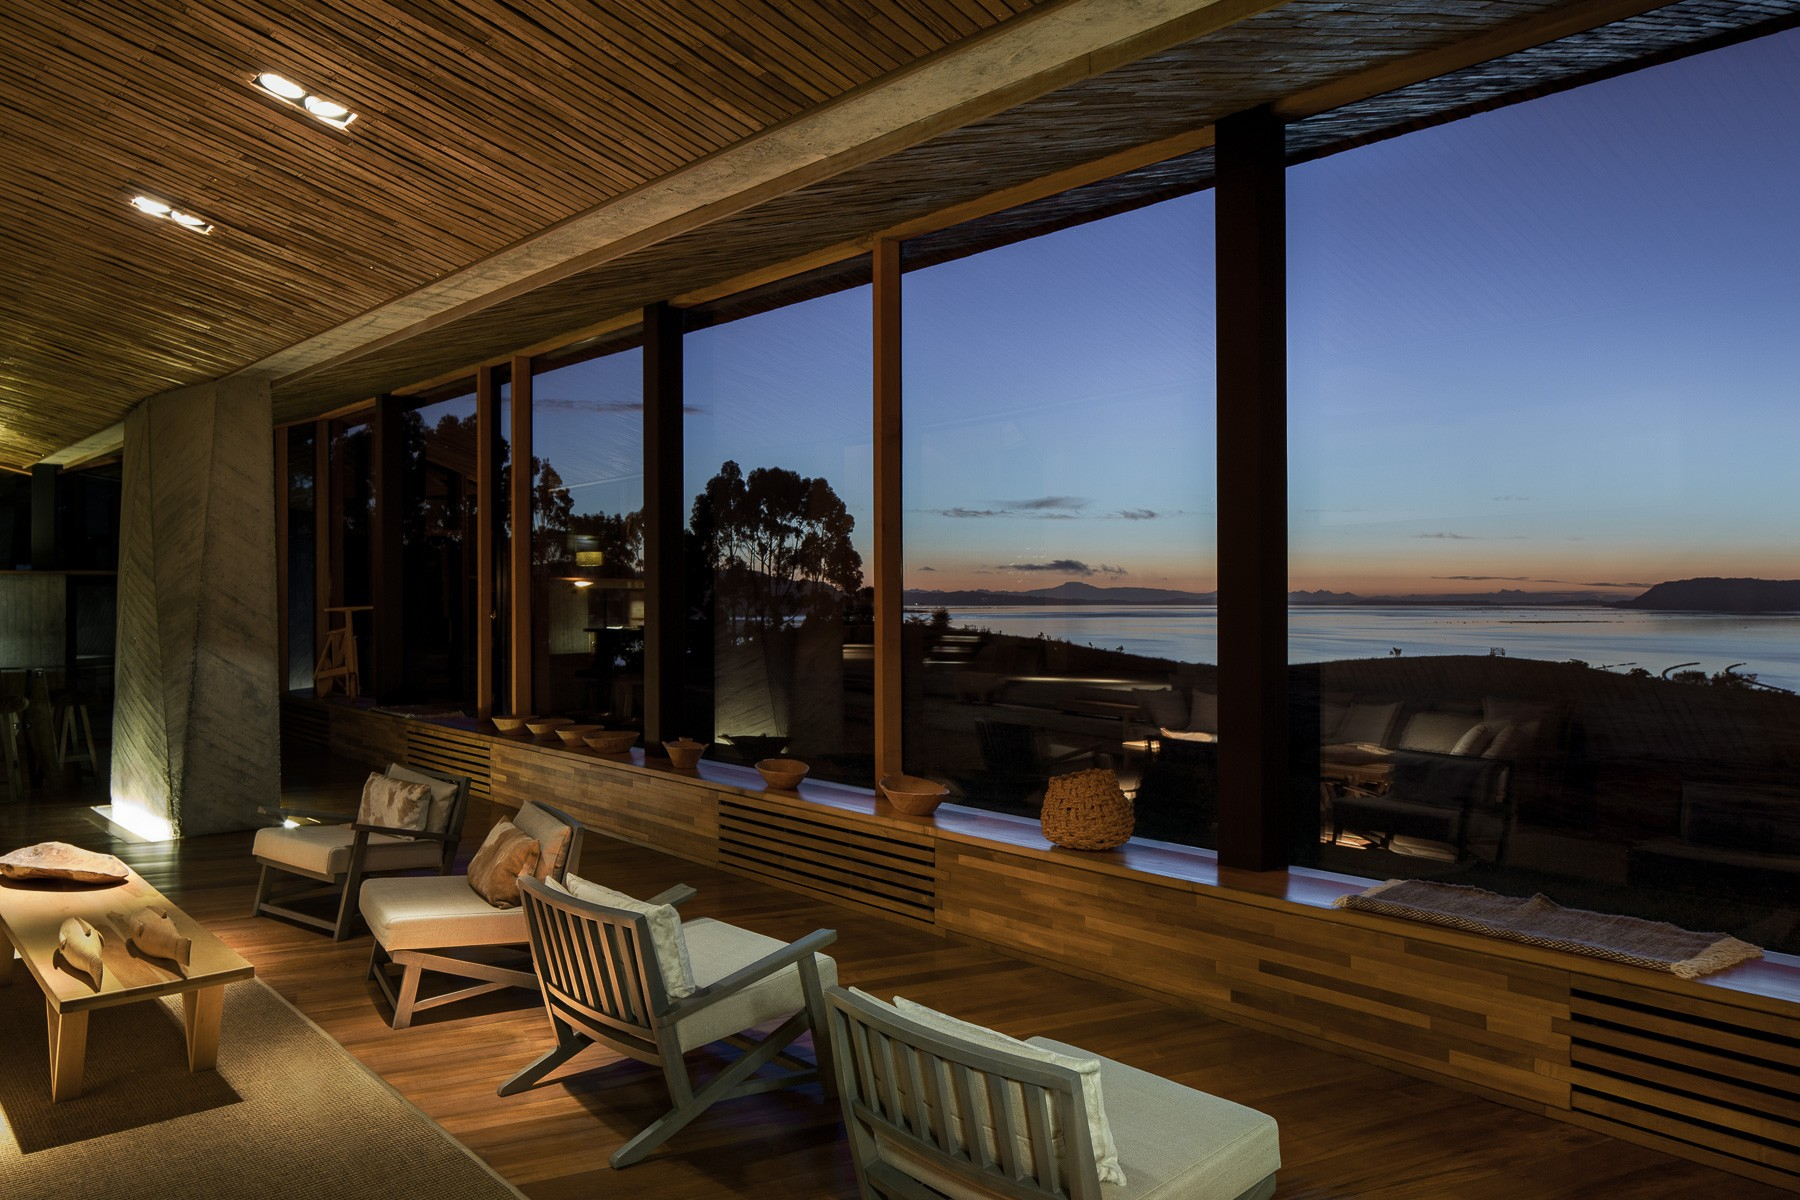 Hotel Tierra Chiloe Sunset View Inside